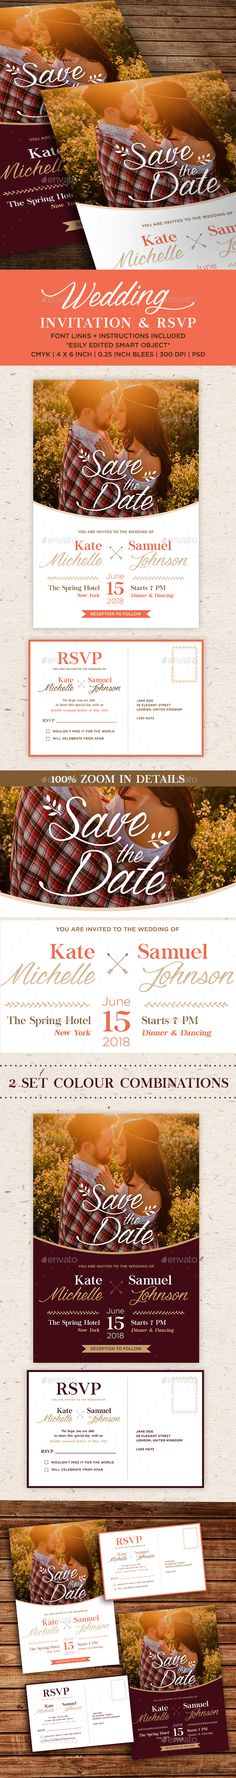 Funeral Invitation in 3 Versions Funeral, Font logo and Graphics - funeral invitation cards